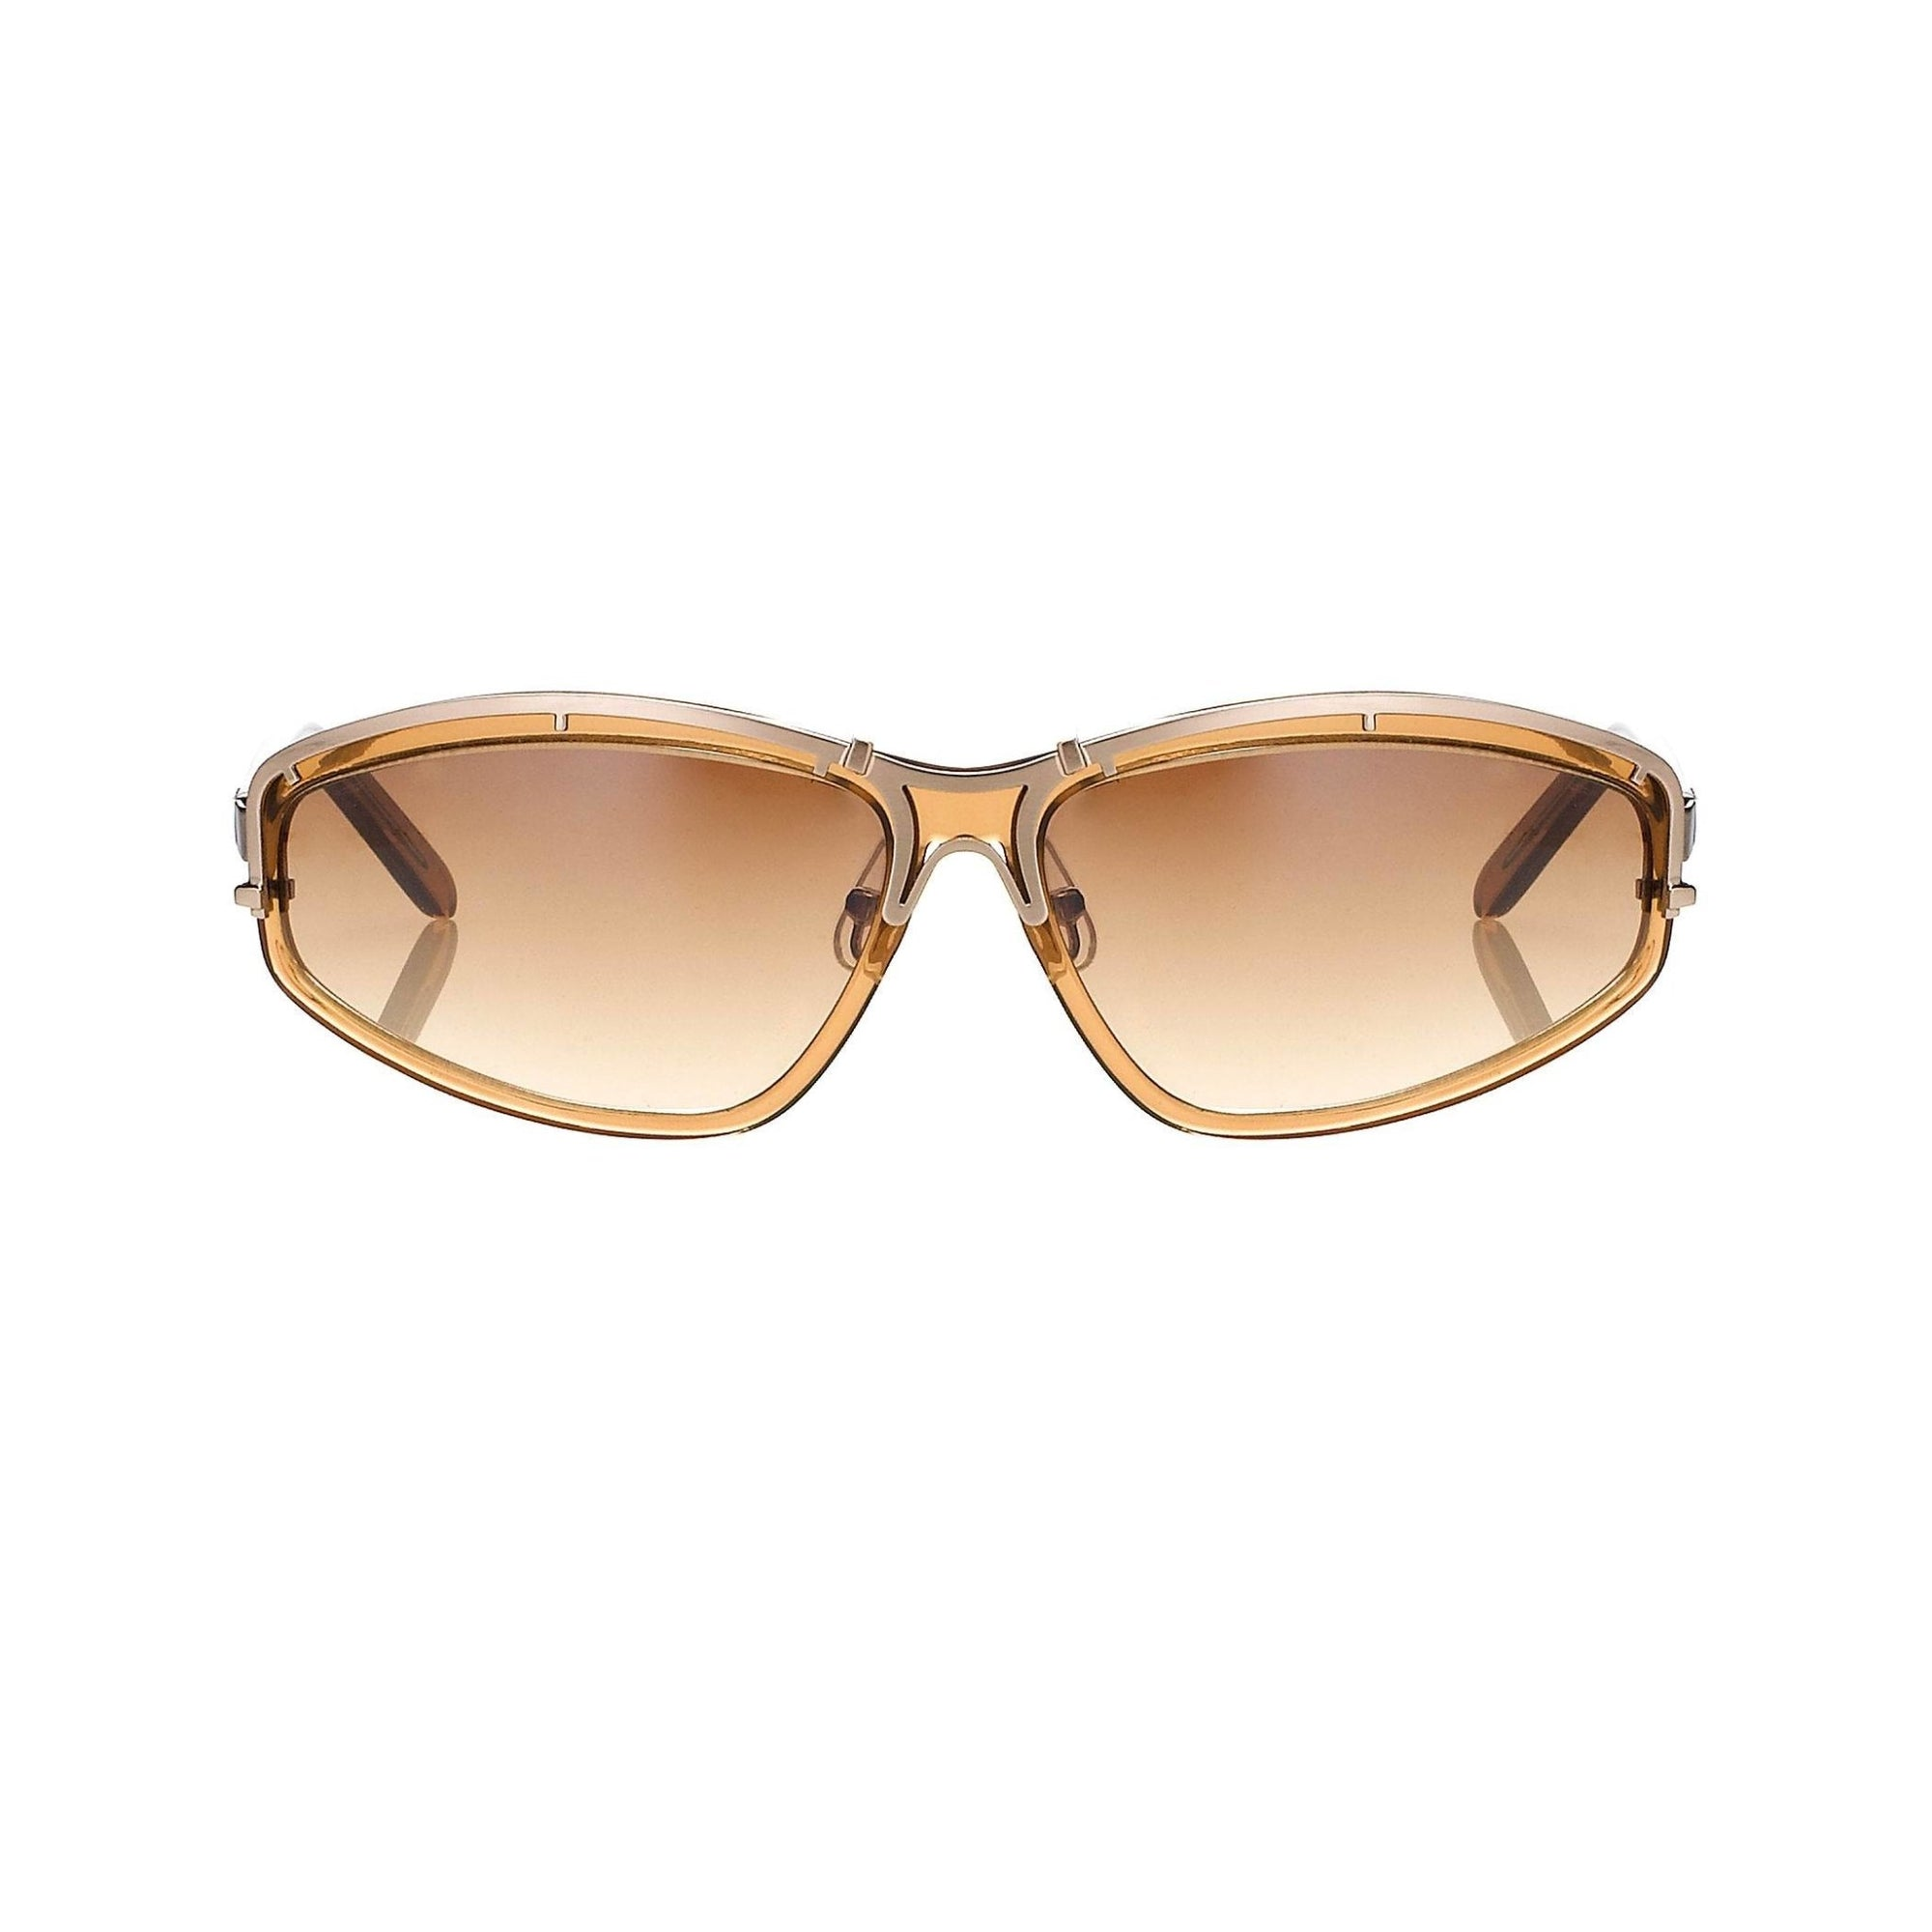 Yohji Yamamoto Unisex Sunglasses Rectangular Tobacco Brown and Brown Graduated Lenses - 9YY900C3TOBACCO - Watches & Crystals